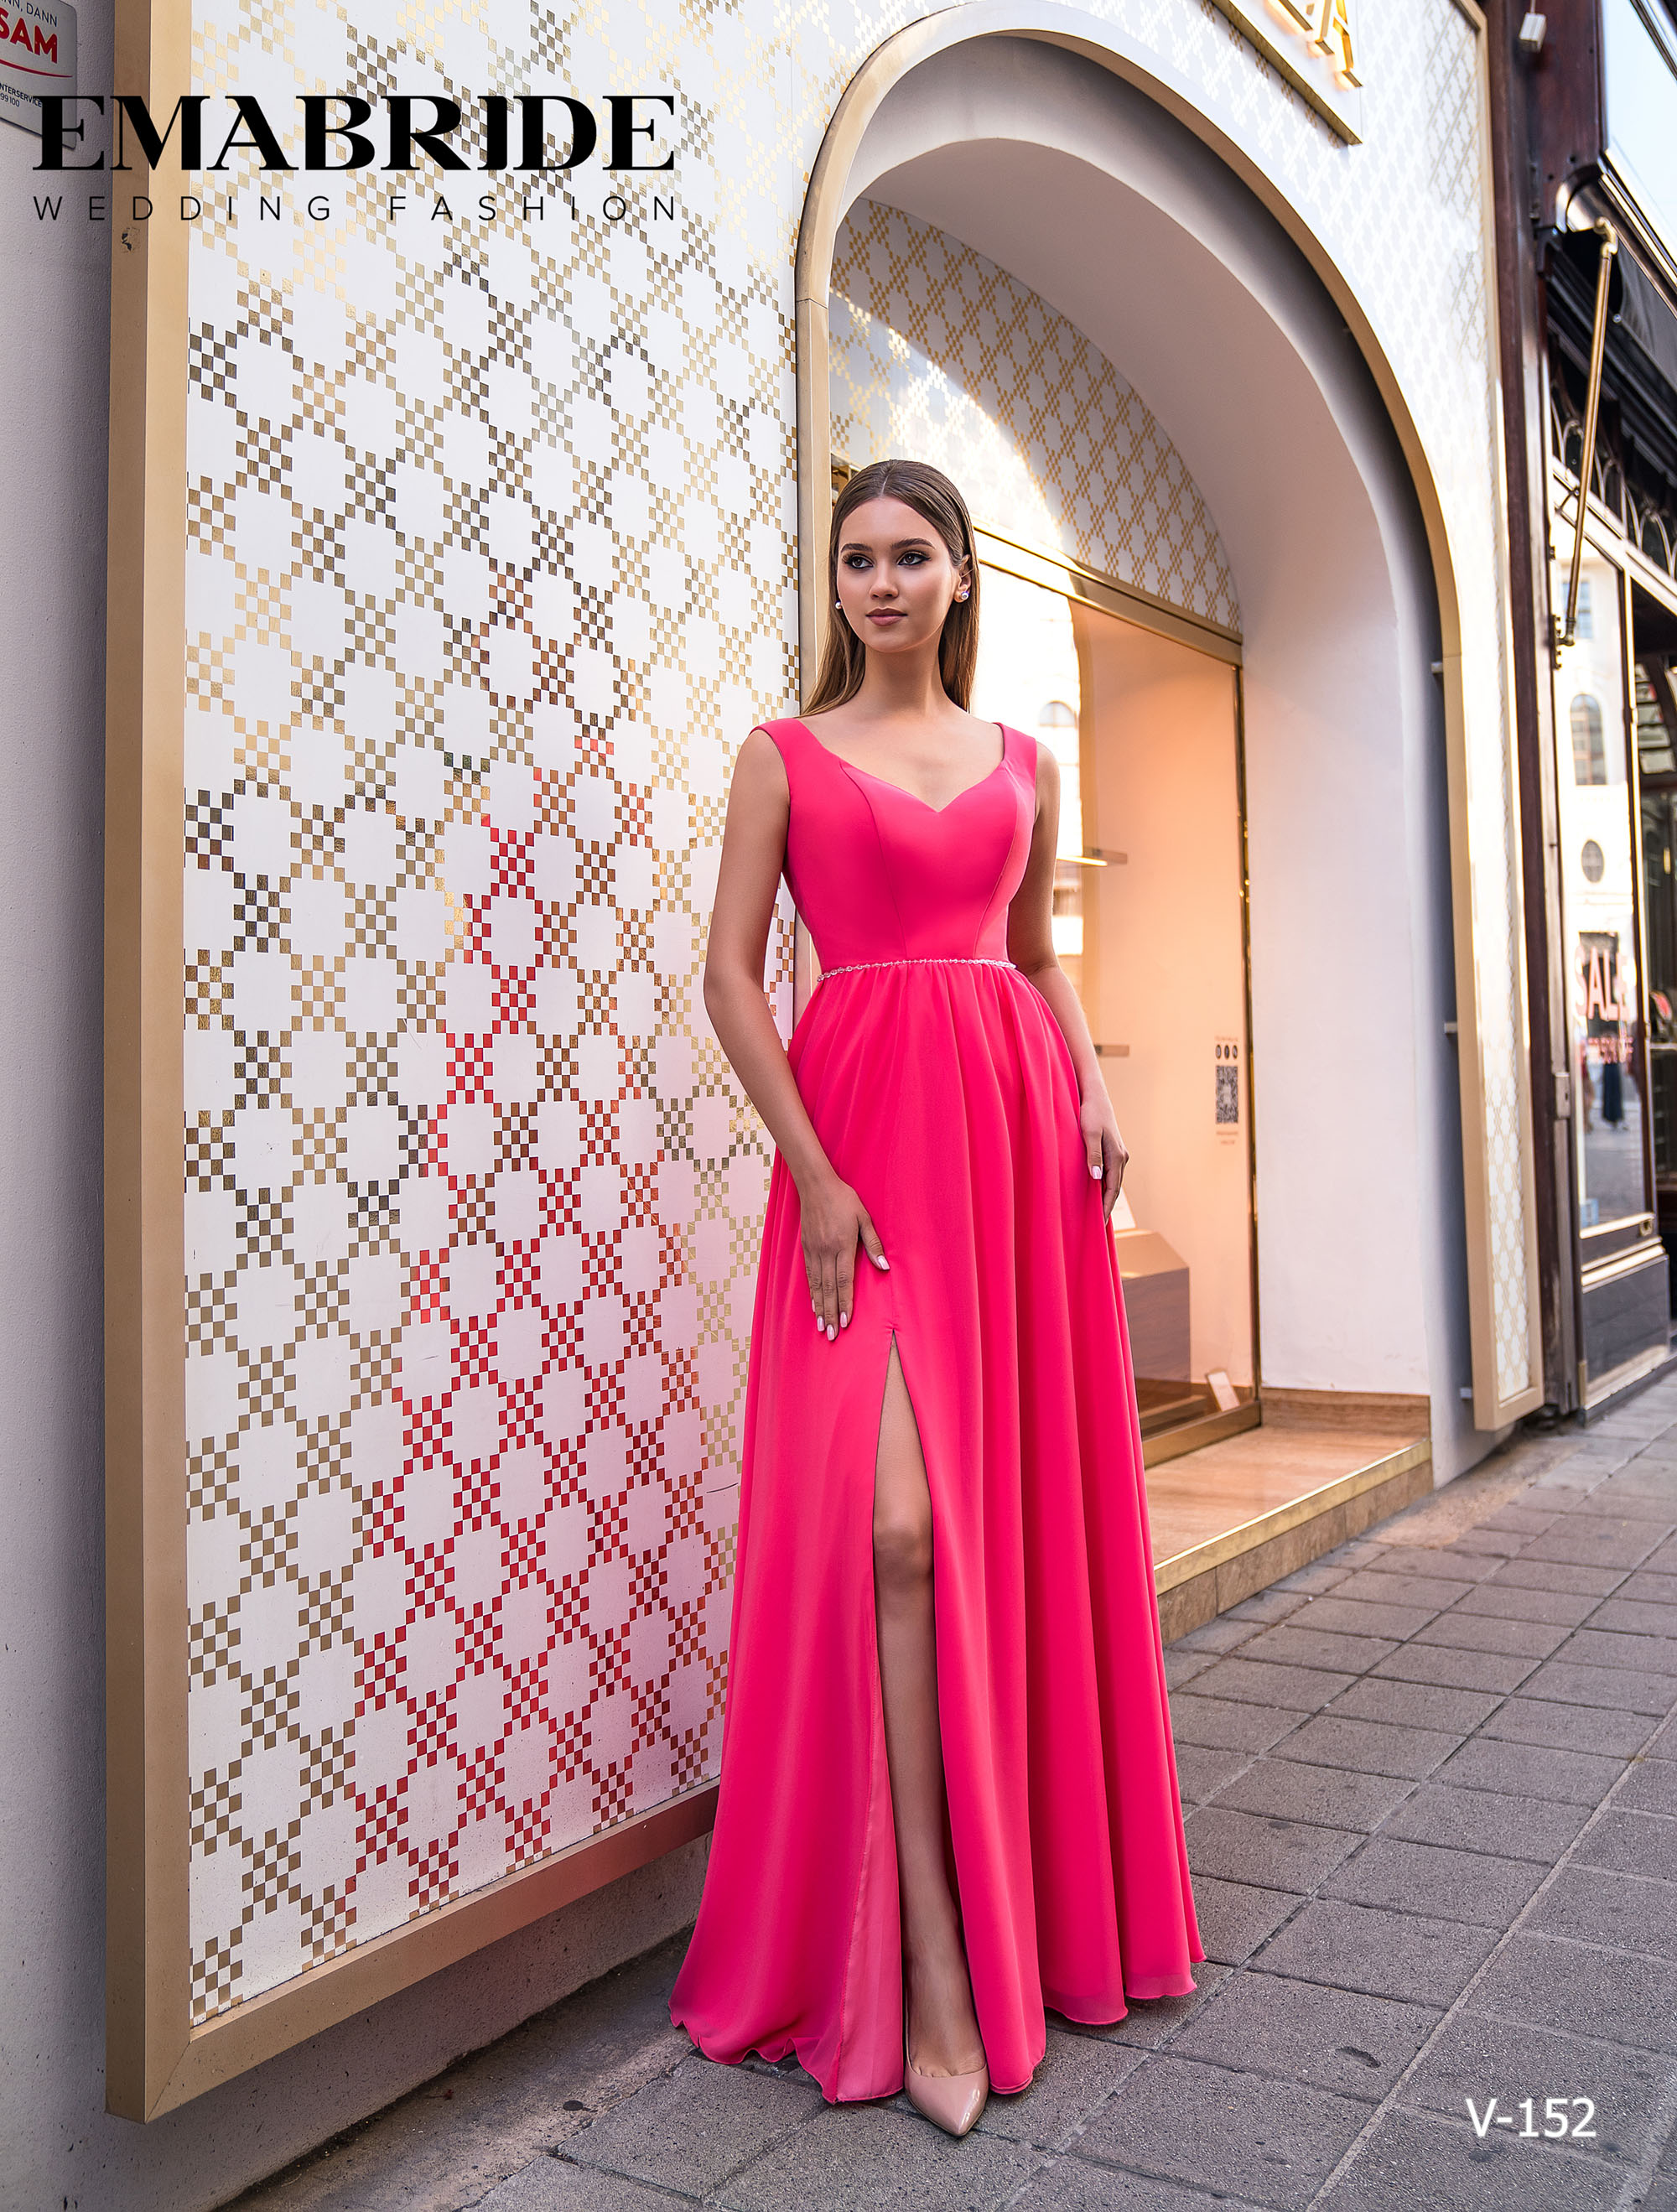 Model V-152 |  Buy evening dresses wholesale by the ukrainian manufacturer Emabride